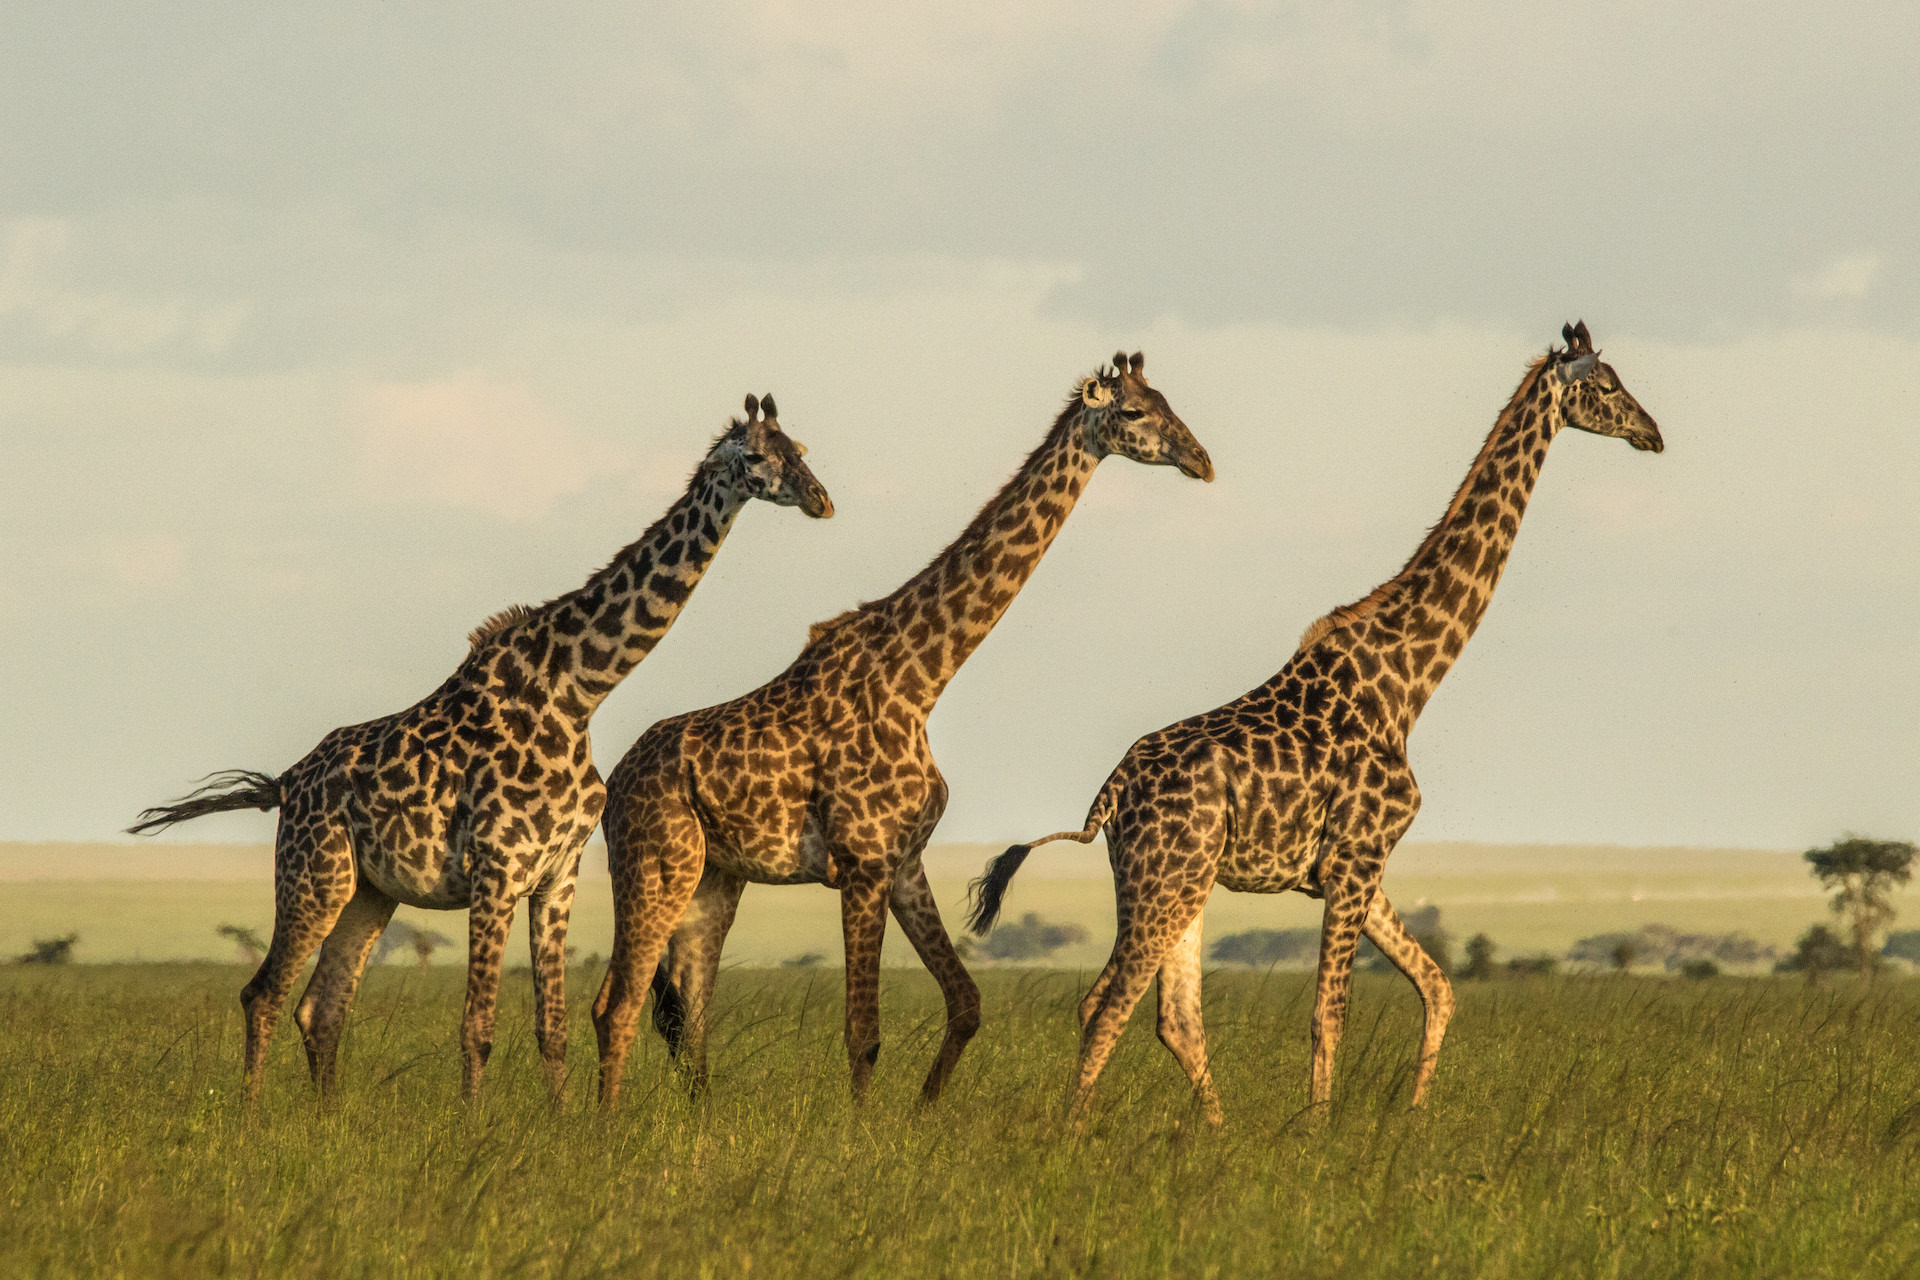 A group of adult female Masai giraffes.